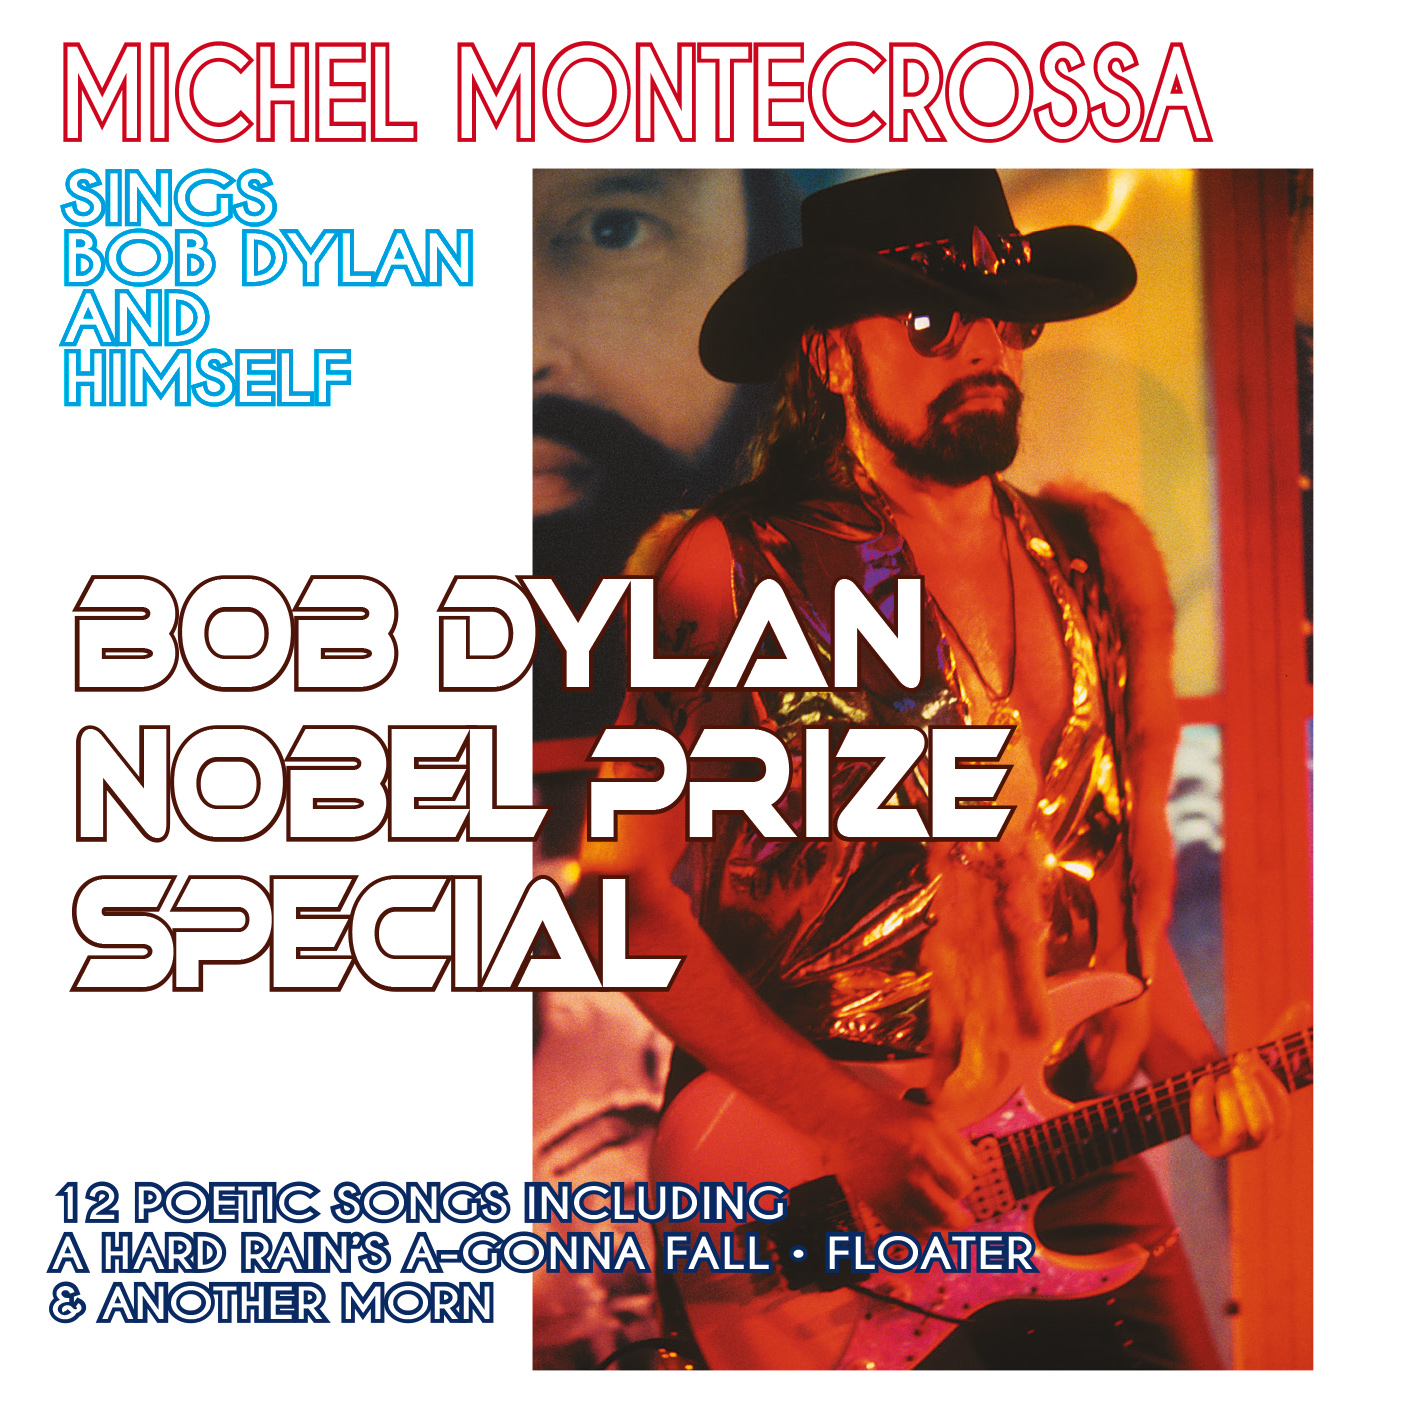 Bob Dylan Nobel Prize Special - Michel Montecrossa sings Bob Dylan and Himself